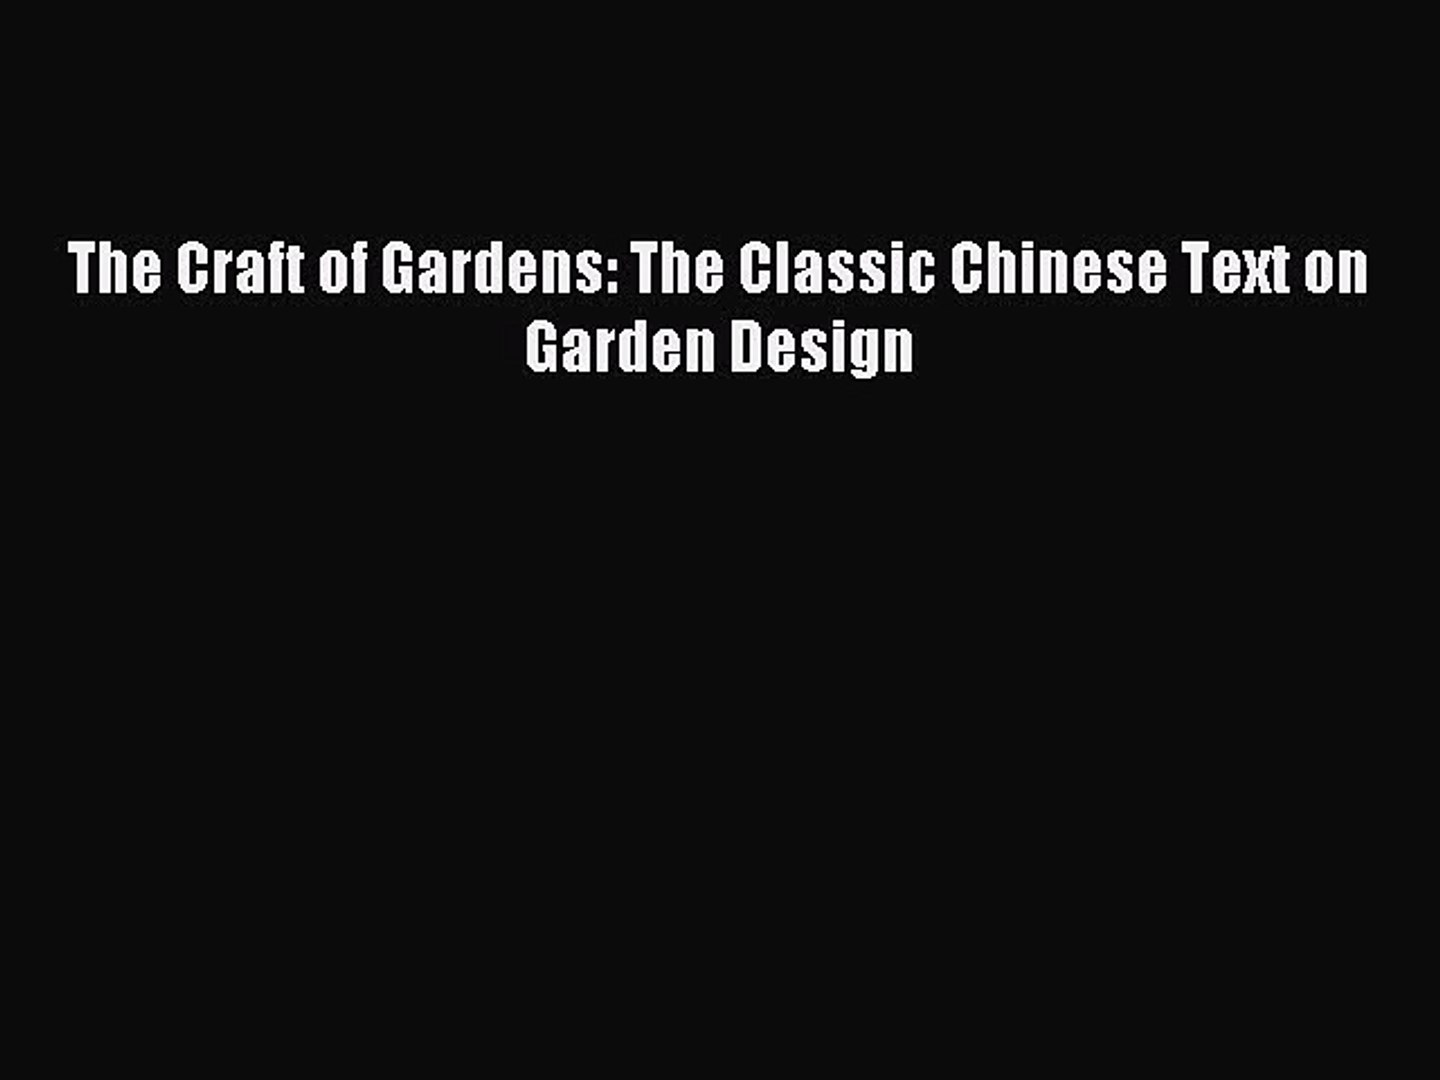 Read The Craft of Gardens: The Classic Chinese Text on Garden Design PDF Free